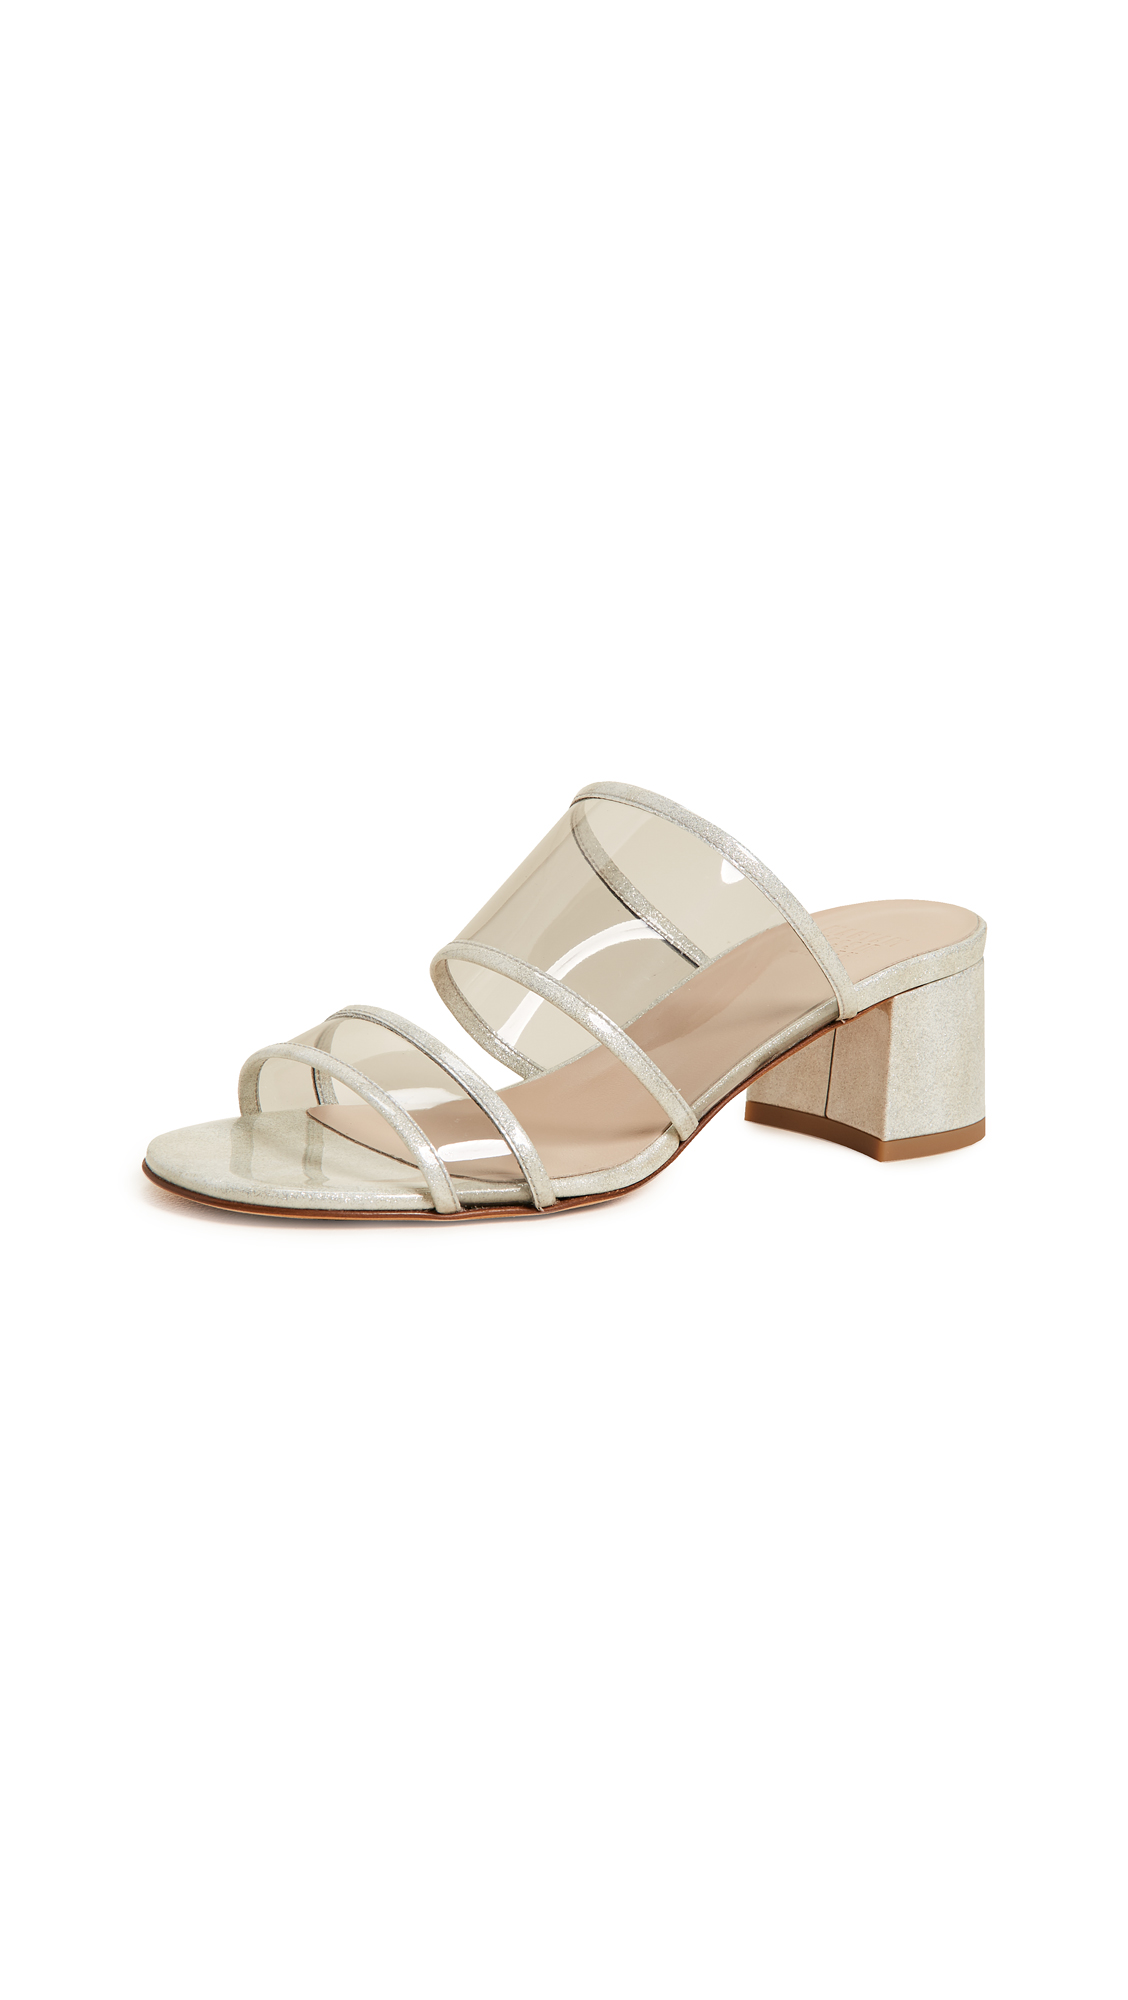 Maryam Nassir Zadeh Martina Clear Slides - Silver Sparkle/Grey